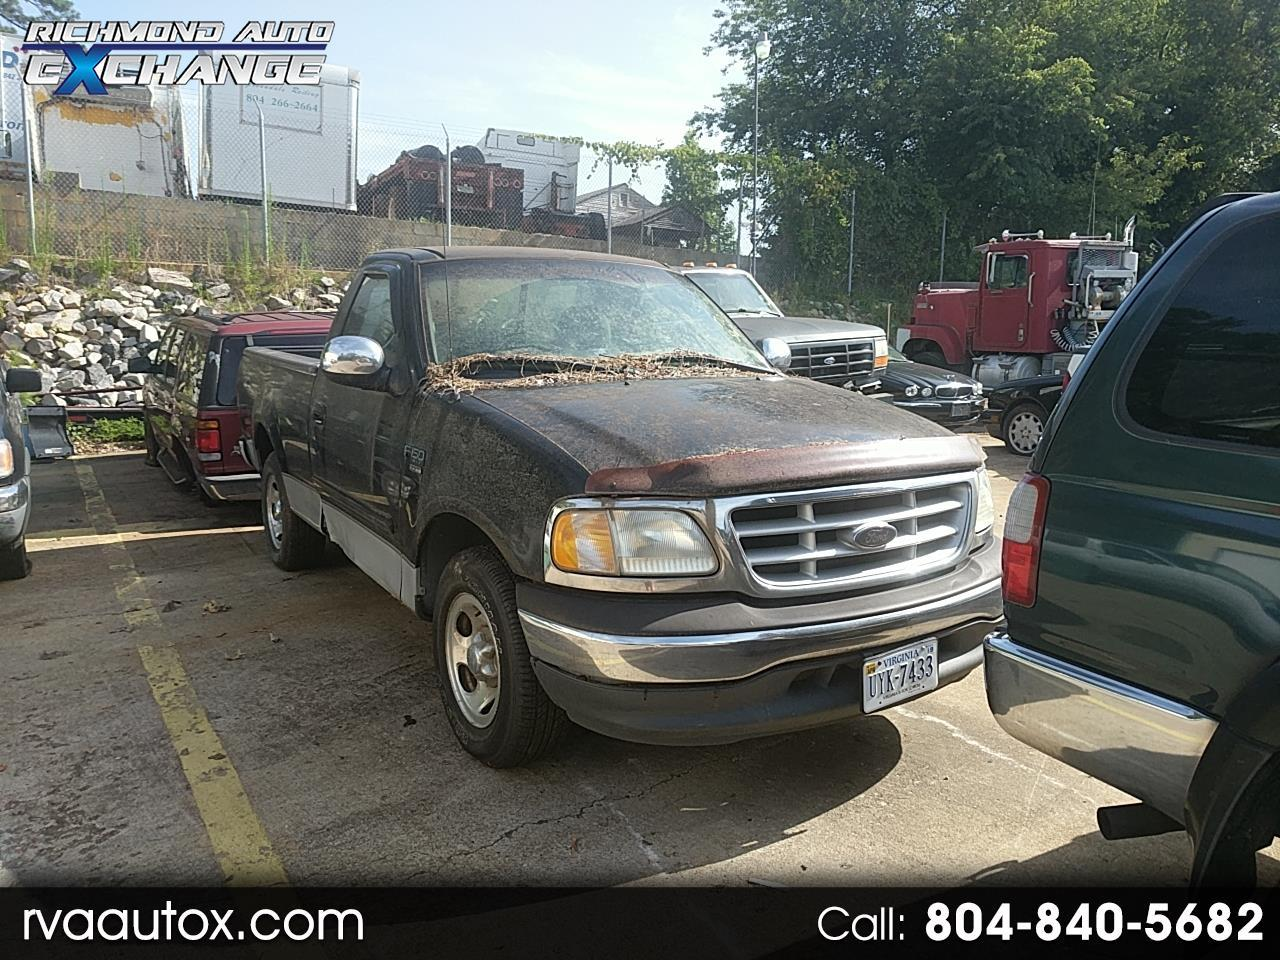 1999 Ford F-150 $1000